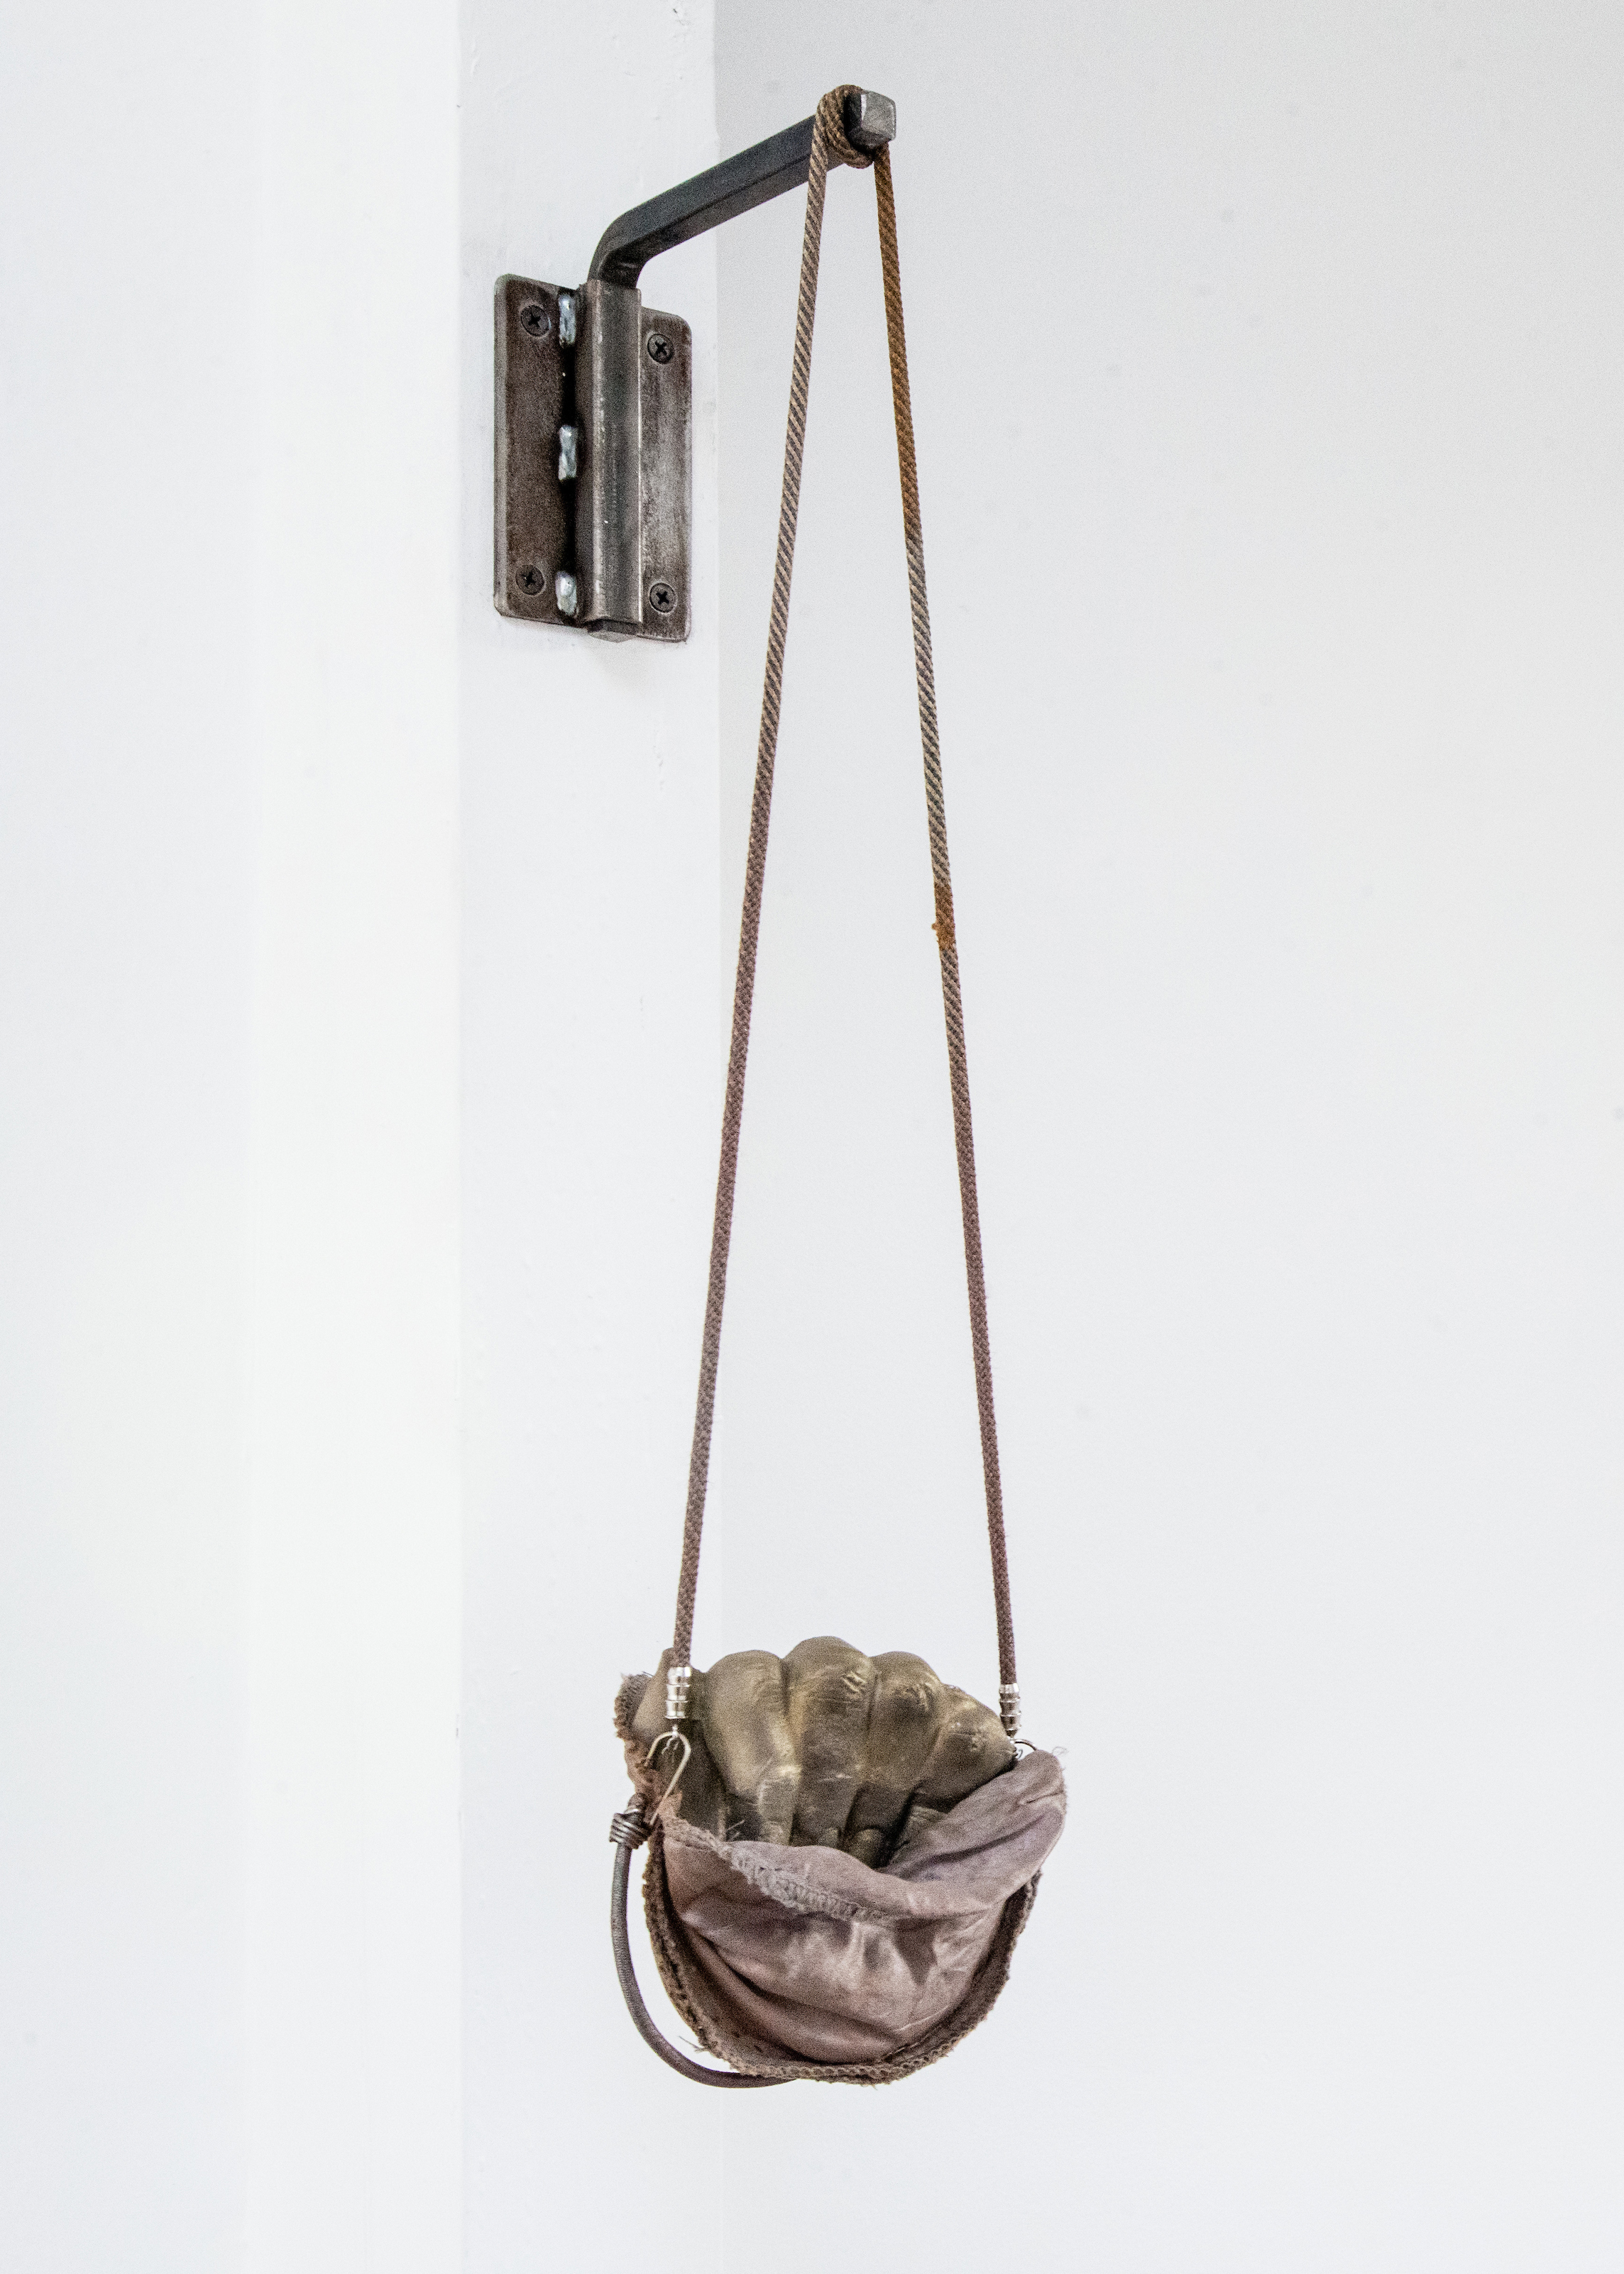 Jenine Marsh,  fist in pocket , 2018. Rust-stained shoulder-pads, necklace cord, bungee cord, staples, wire, powdered pigment, gypsum cement, steel hardware